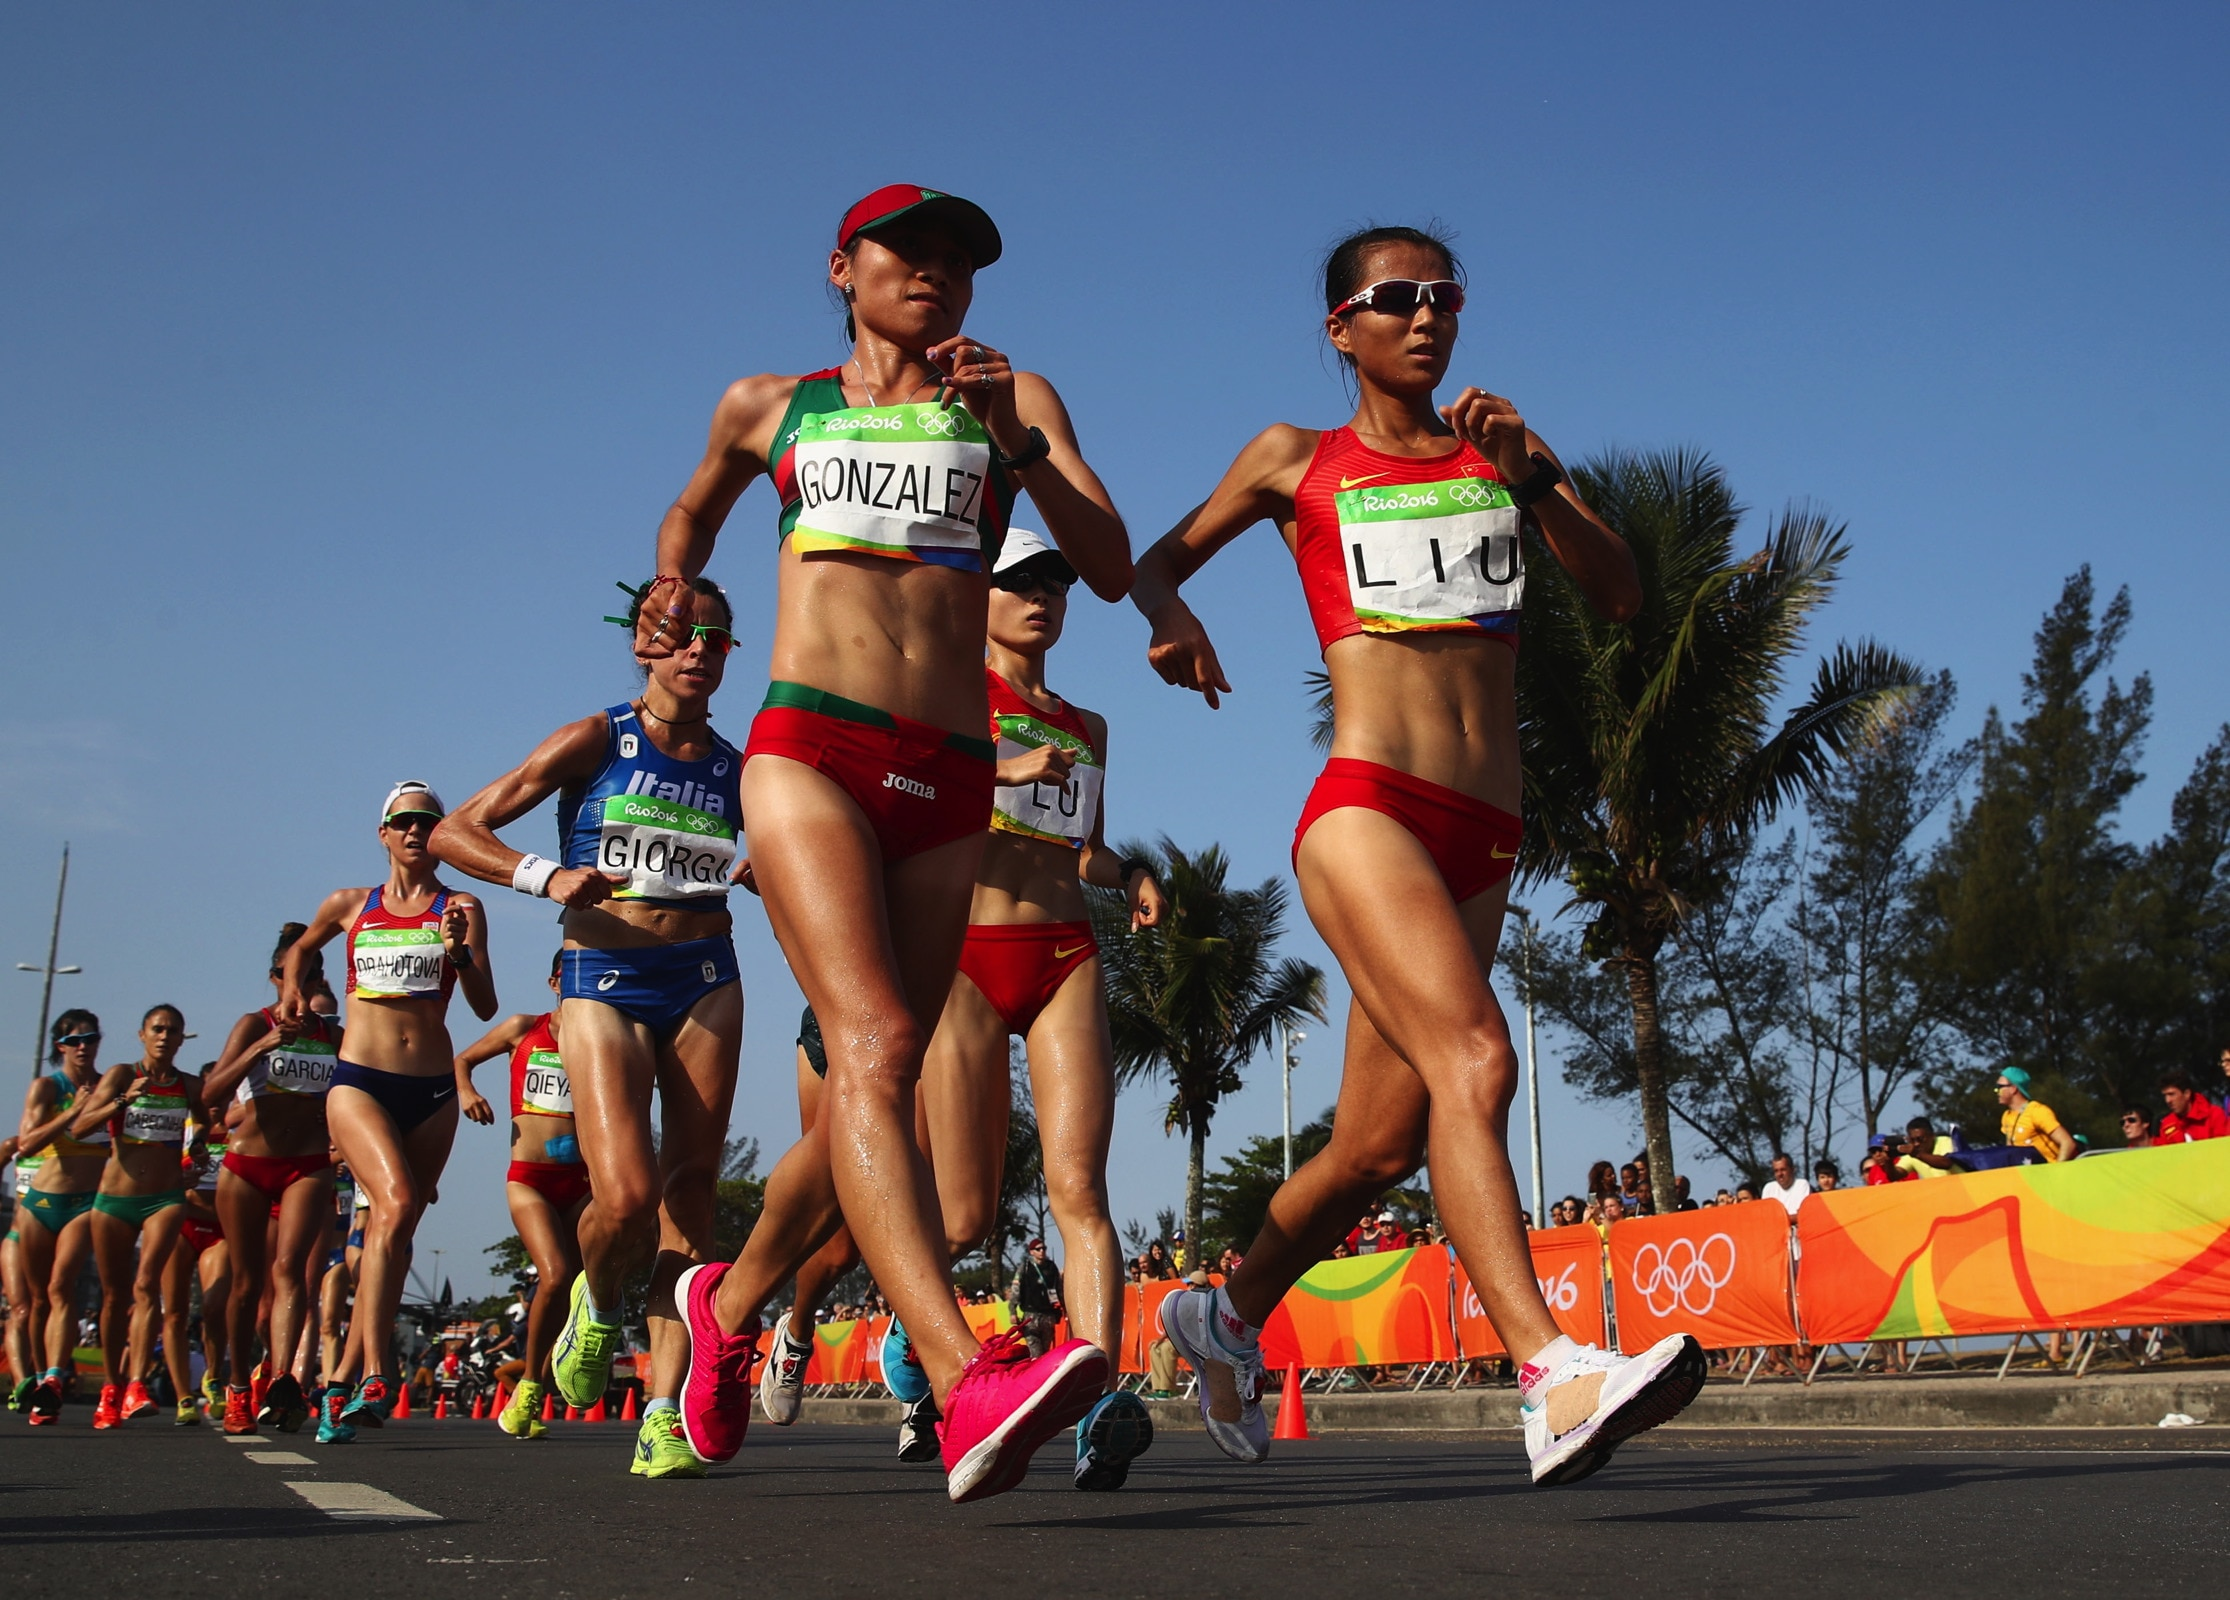 Athletics - 20km Race Walk Women